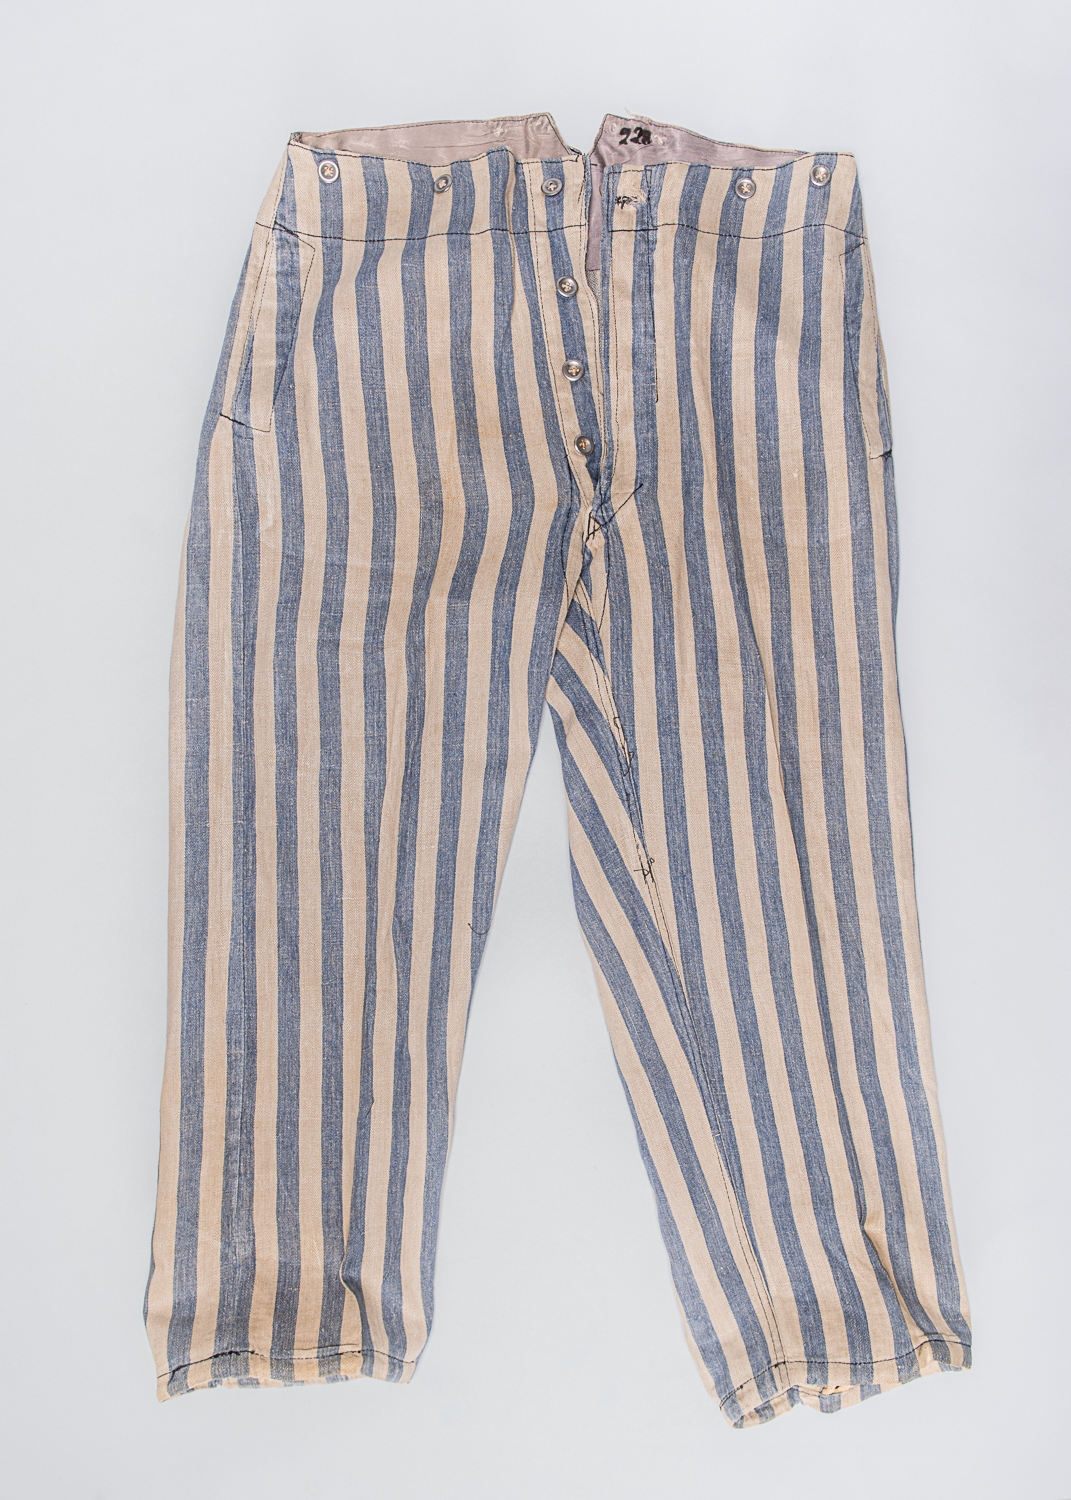 Pantalon de l'uniforme de prisonnier du camp de concentration d'Auschwitz Birkenau ayant appartenu à Louis Miller. (Photo : Peter Berra)